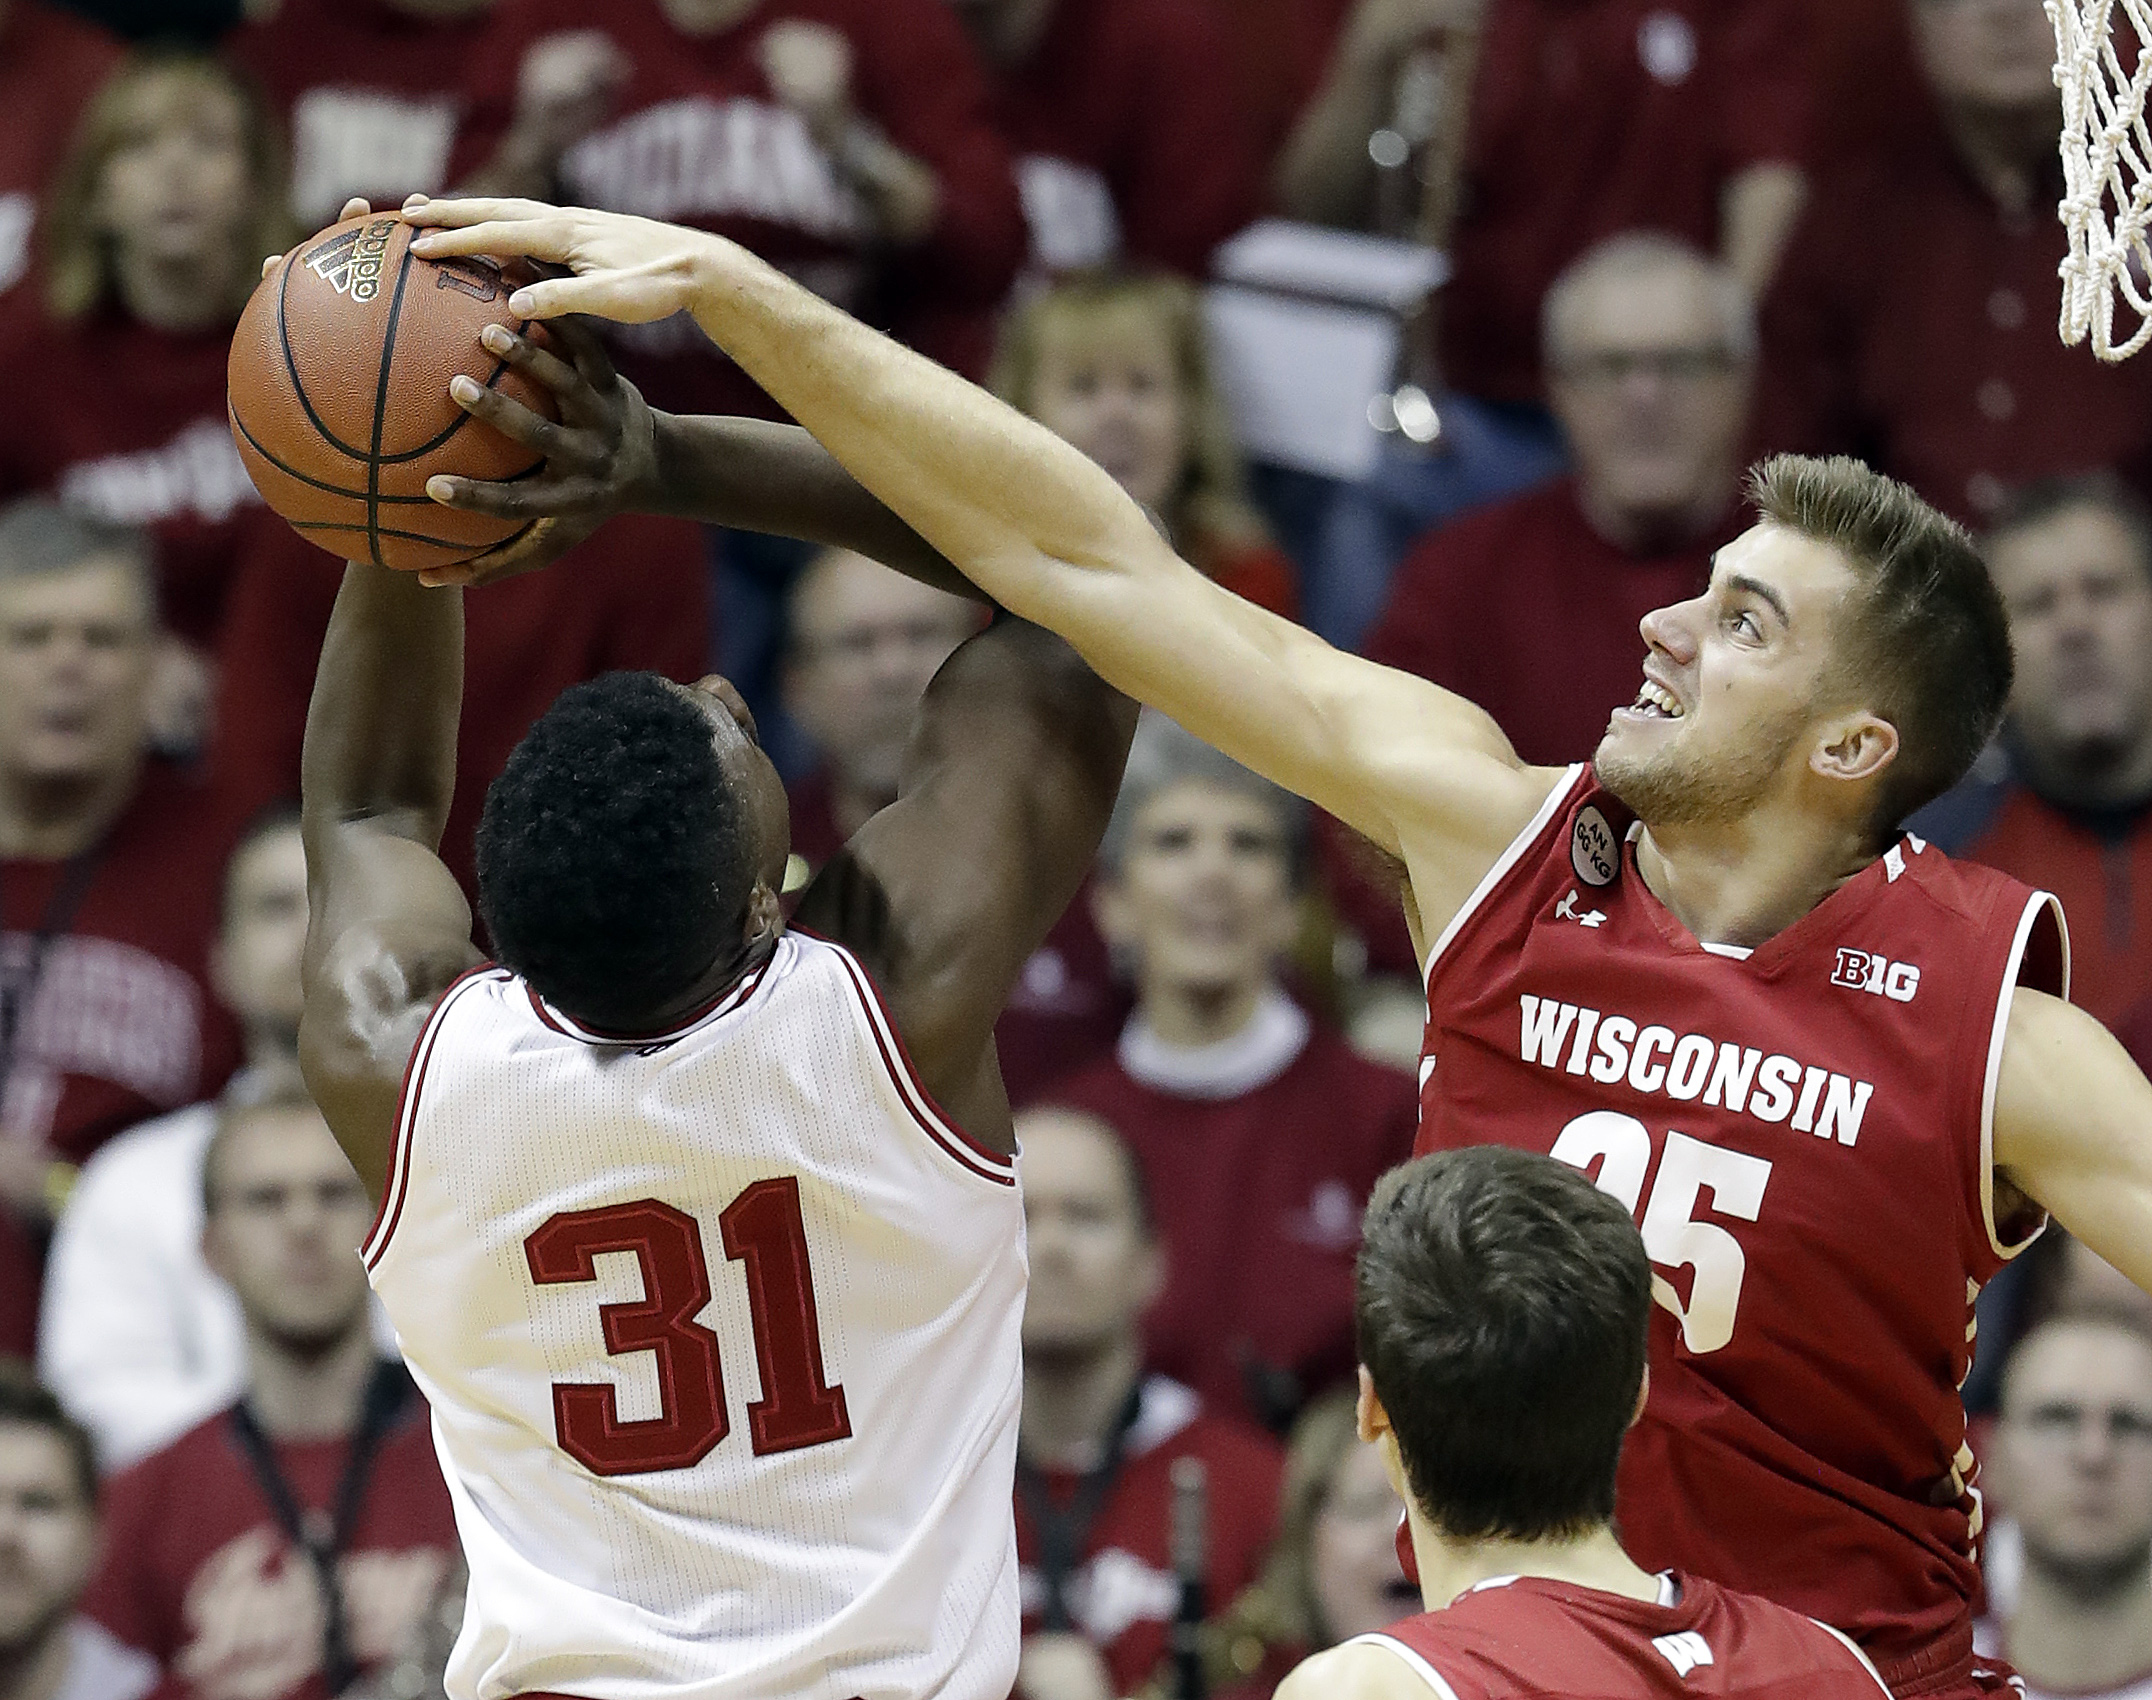 Indiana's Thomas Bryant has his shot blocked by Wisconsin's Alex Illikainen during the first half of an NCAA college basketball game Tuesday, Jan. 3, 2017, in Bloomington Ind. (AP Photo/Darron Cummings)